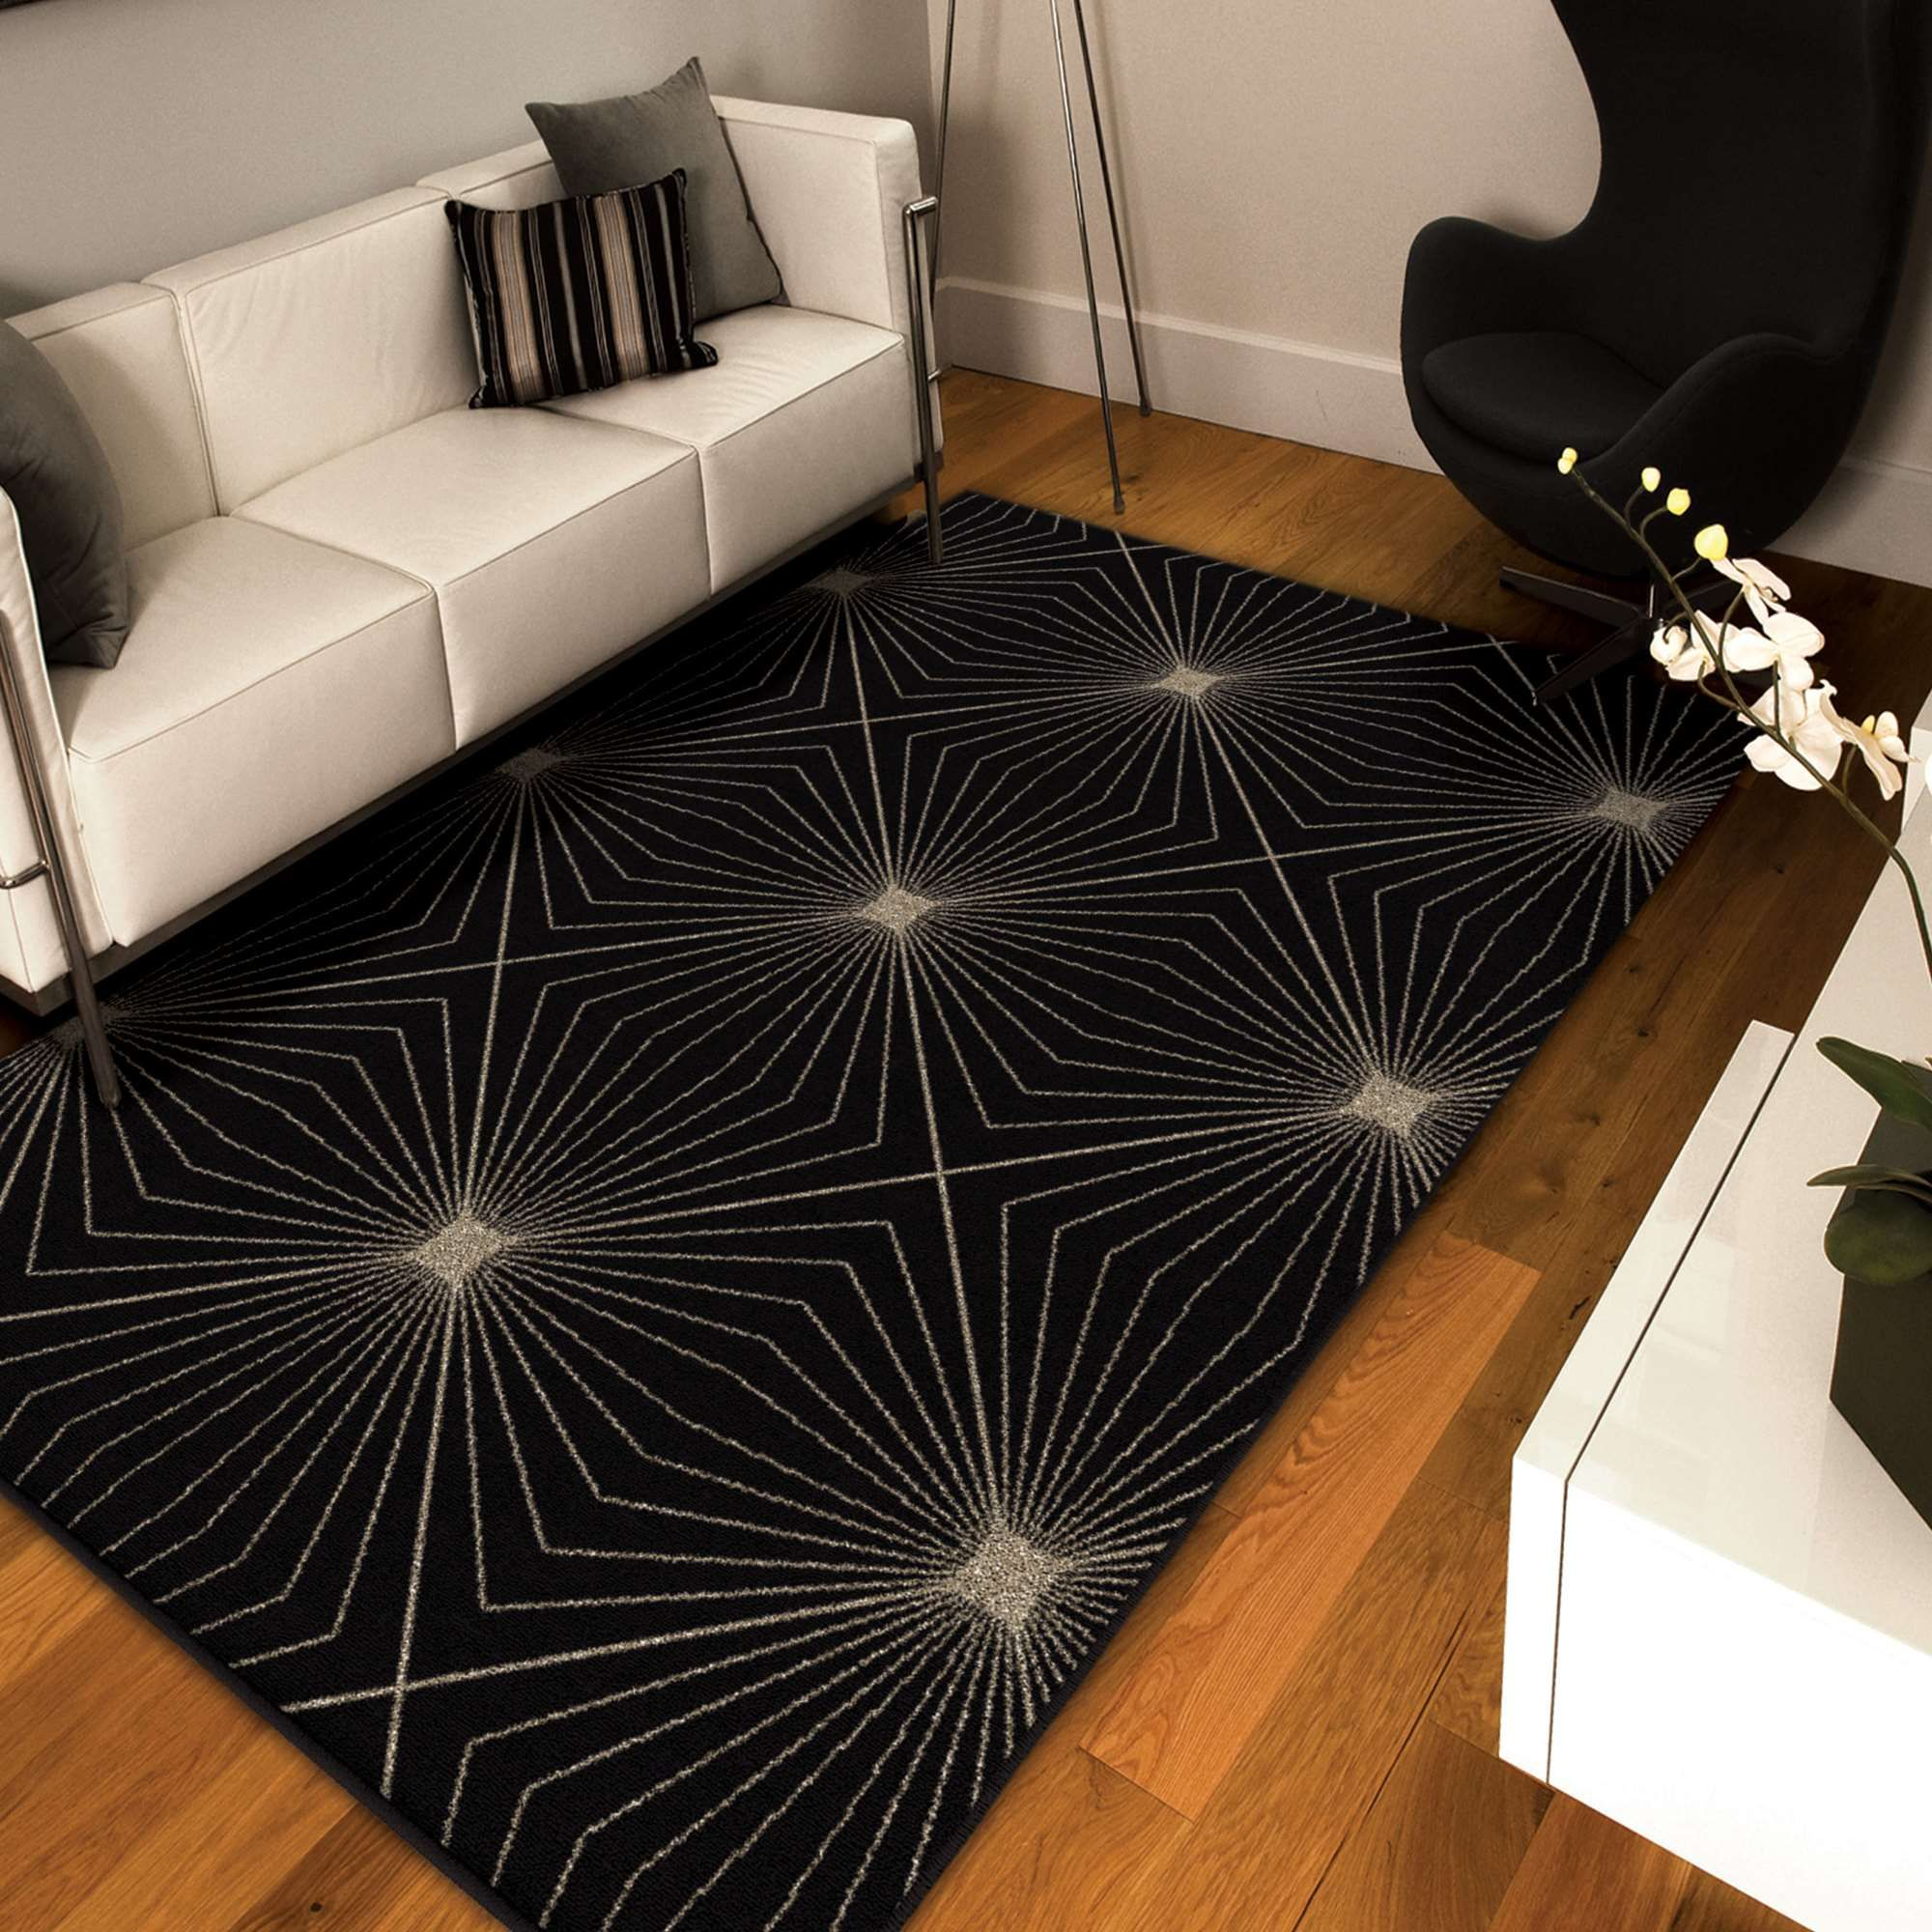 With attractive neutral colors, this Da Vinci Illusion Black Rug is a perfect complement to many decor styles. The Da Vinci collection joins contemporary blacks, diffused browns and tranquil creams, making this collection a vision of unique style